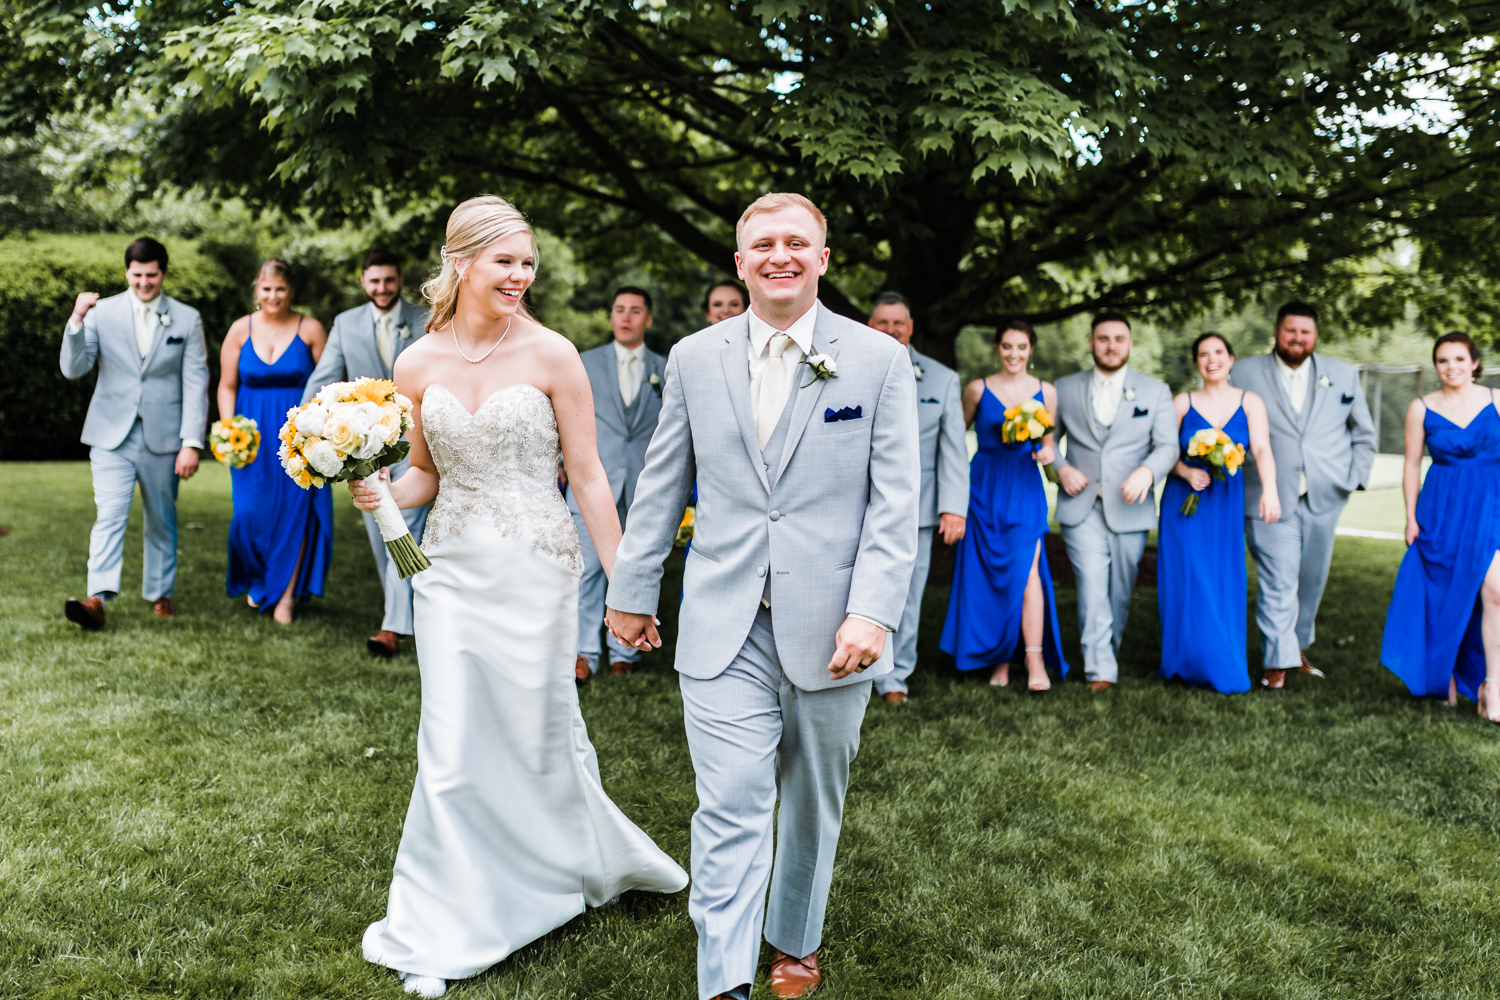 bridal party posing ideas - best candid photographer in MD